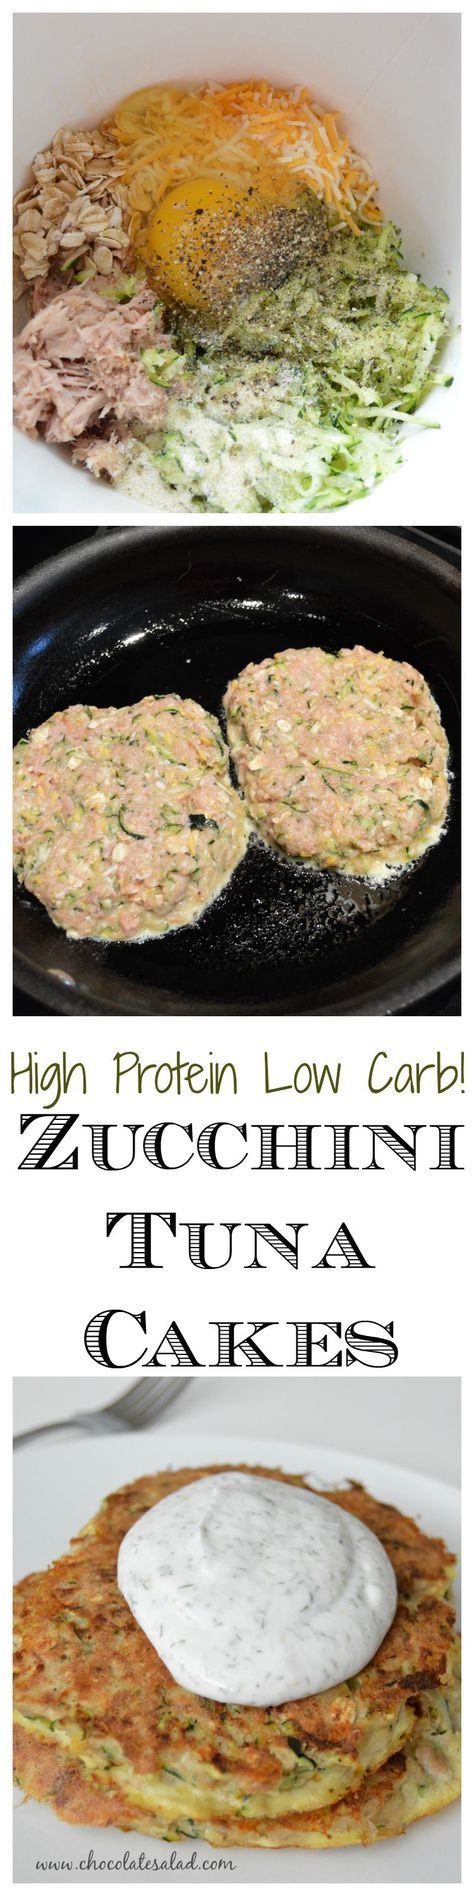 Easy meal or snack for zuuchini season. Only 280 calories and 34 g protein! Zucchini Tuna Cakes on chocolatesalad.com (healthy drinks for kids low carb)